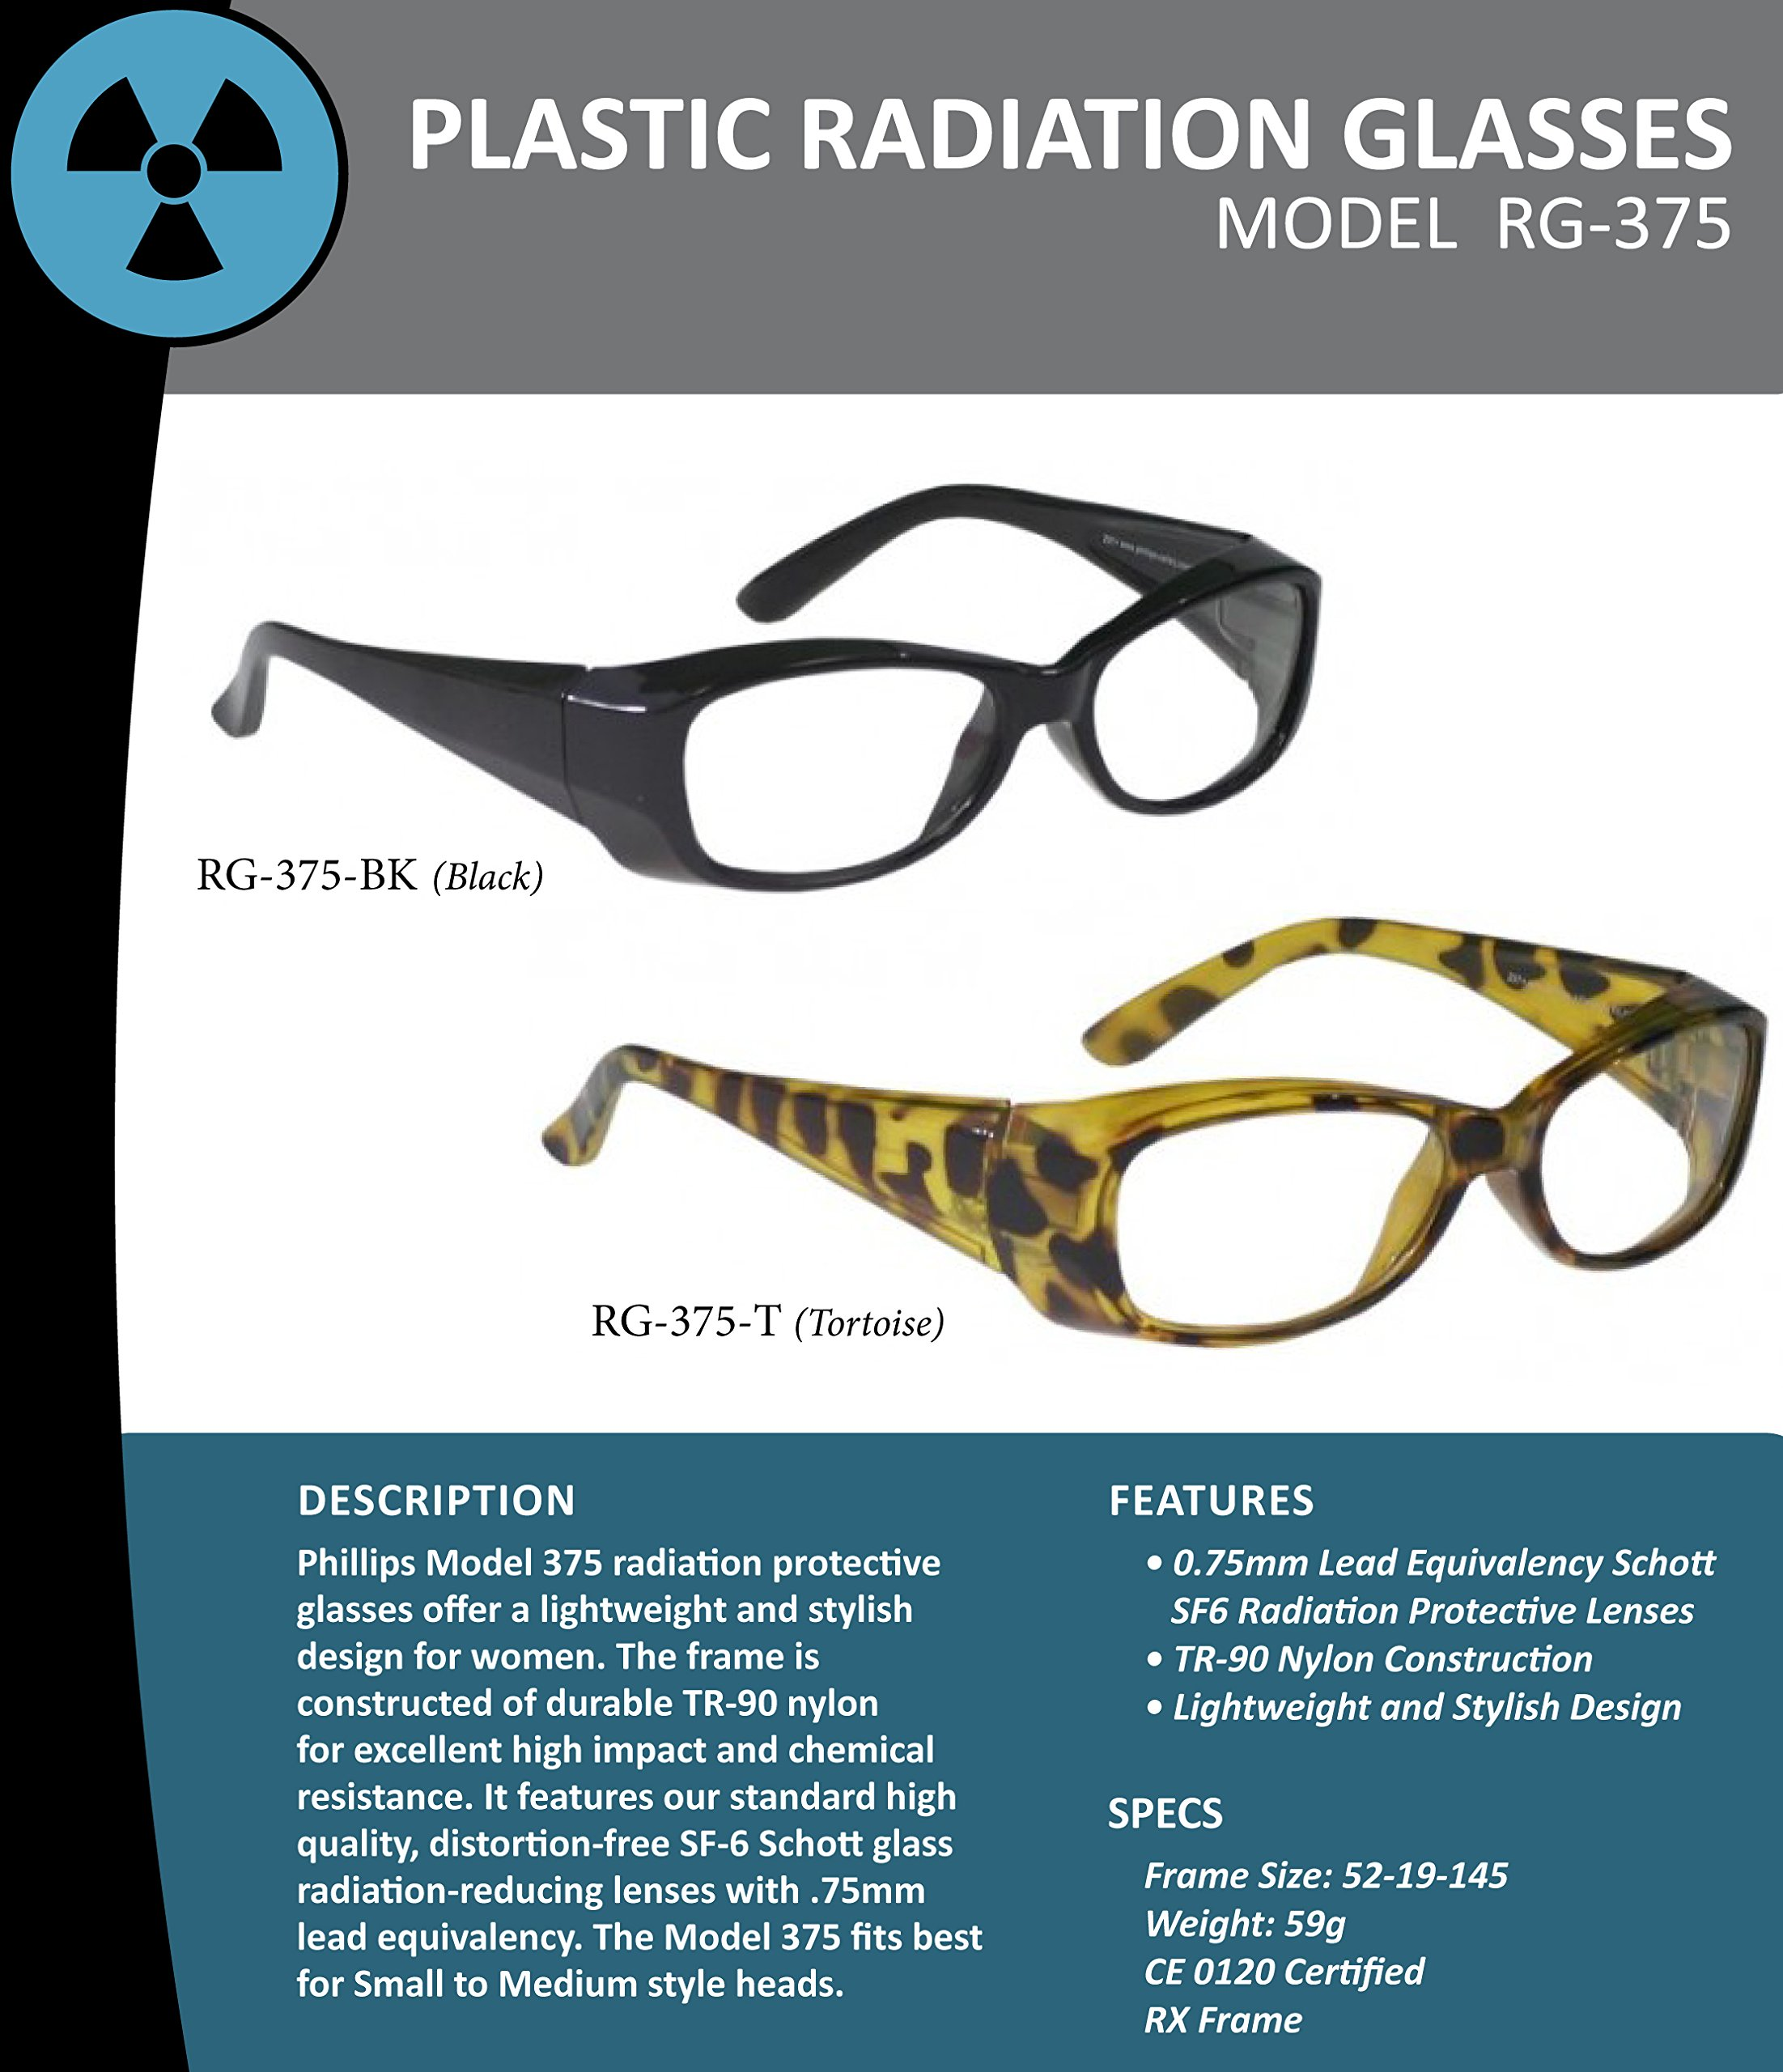 X-ray Radiation Leaded Protective Eyewear in Stylish, Lightweight and Comfortable Women's Plastic Safety Frame That Is Designed to Hug the Contour of Your Face Blocking Light From All Angles by Schott SF-6 HT